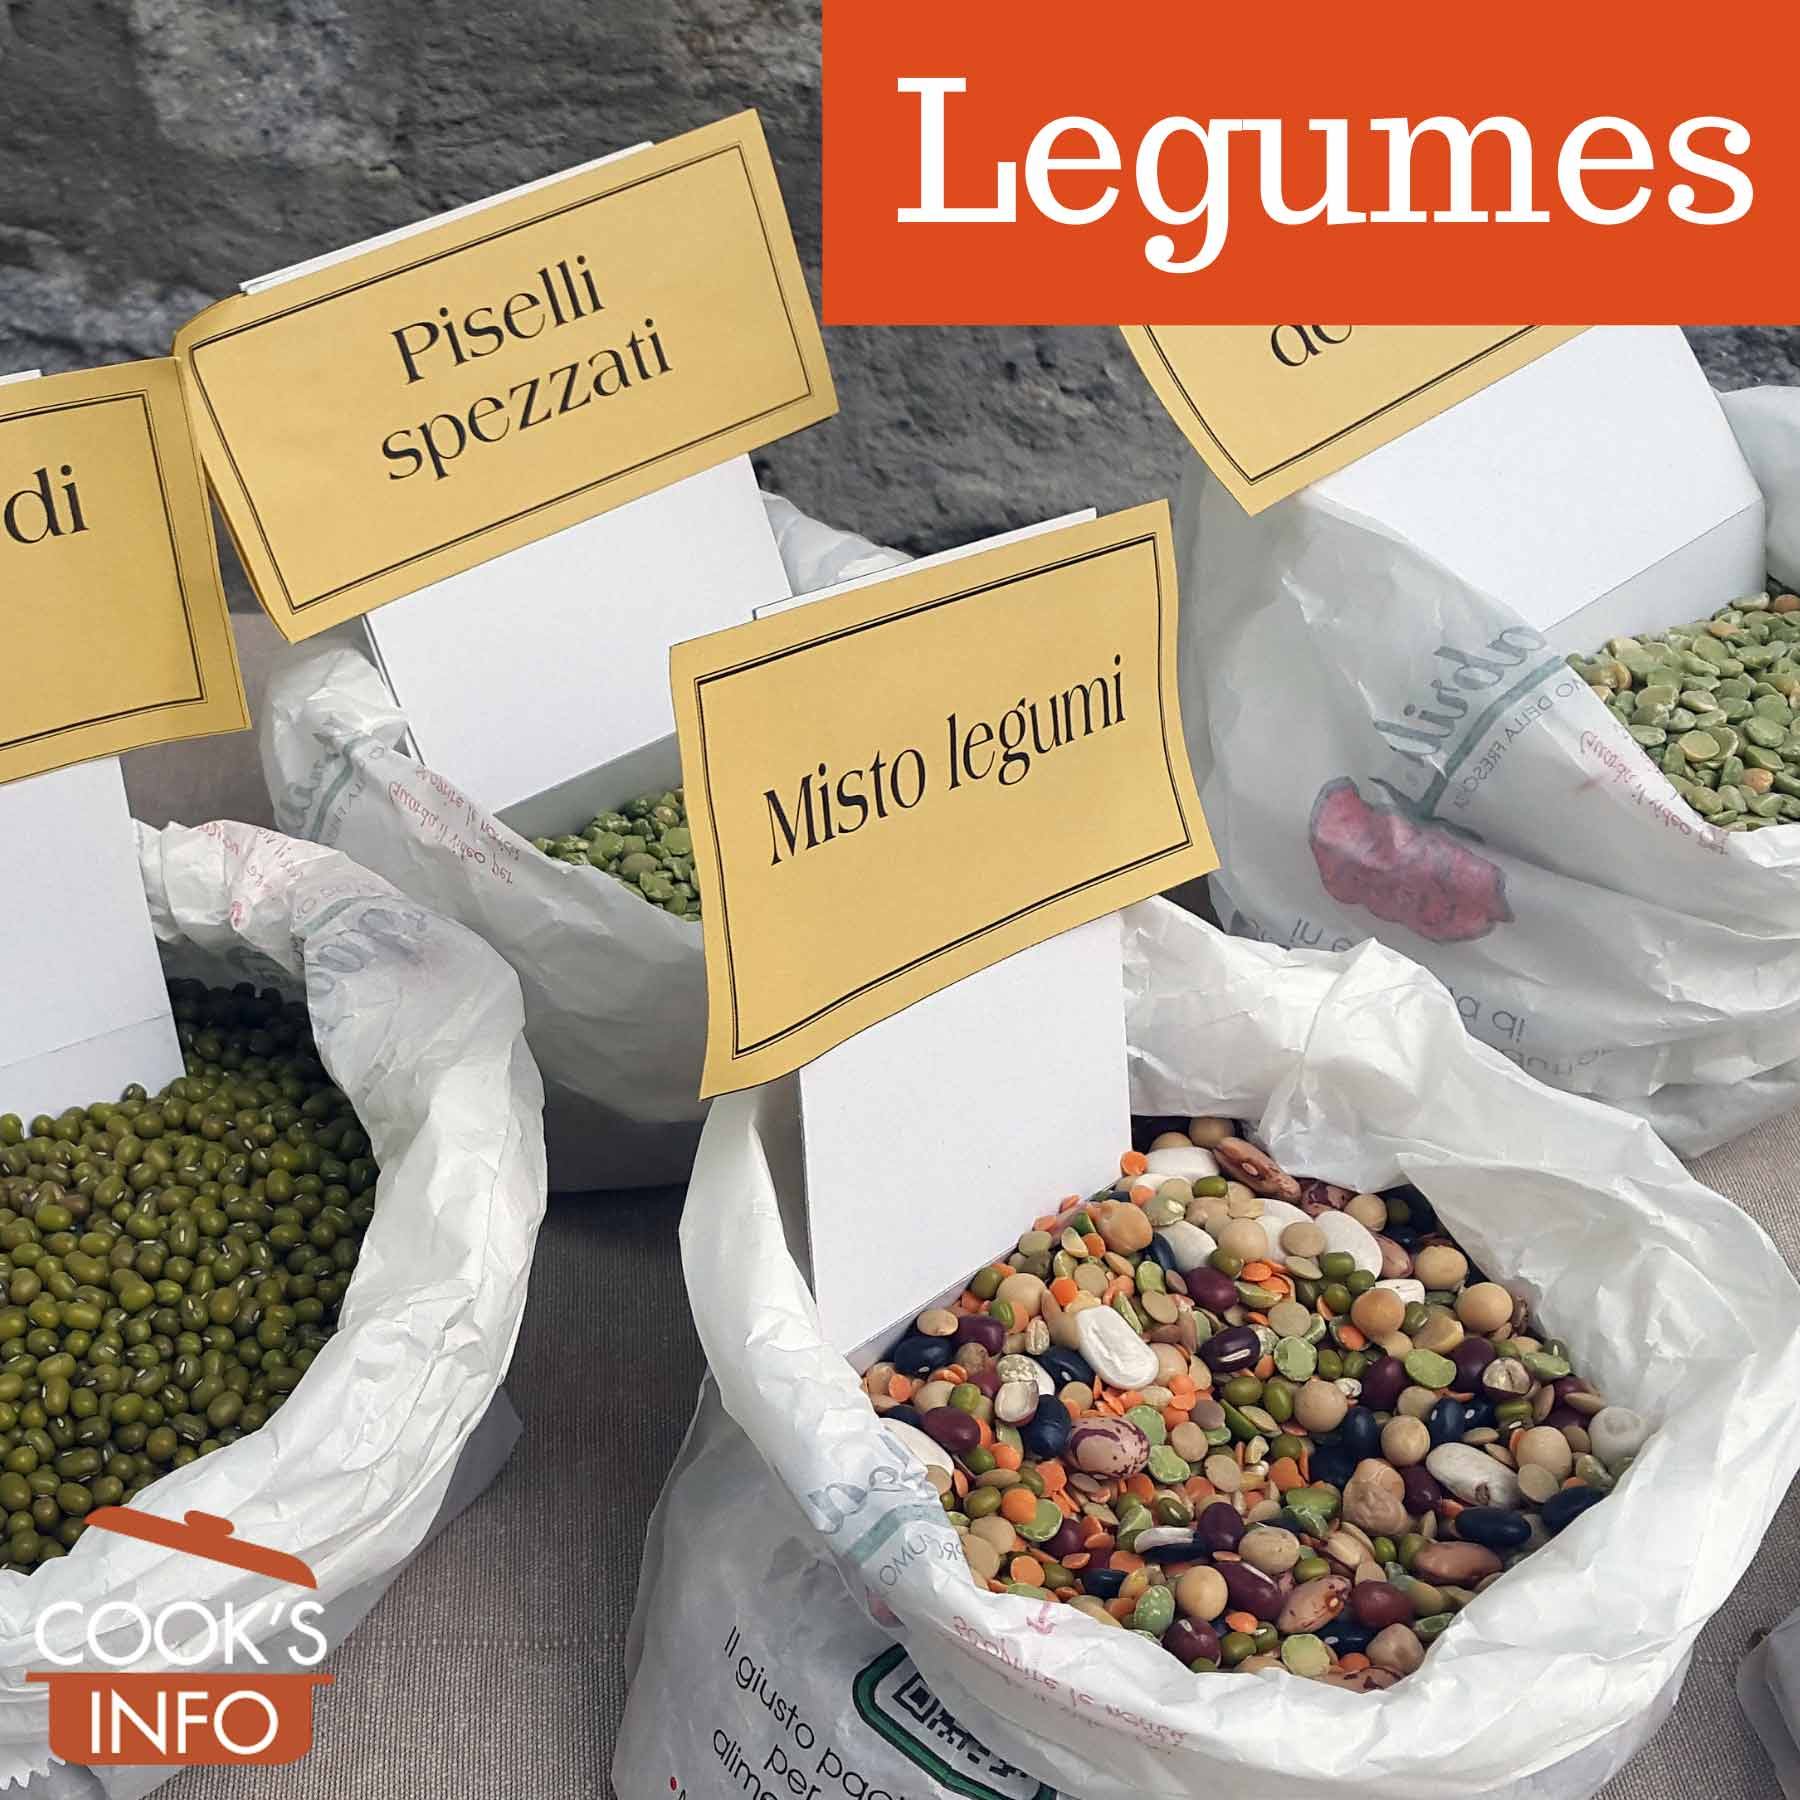 Legumes for sale in Italy